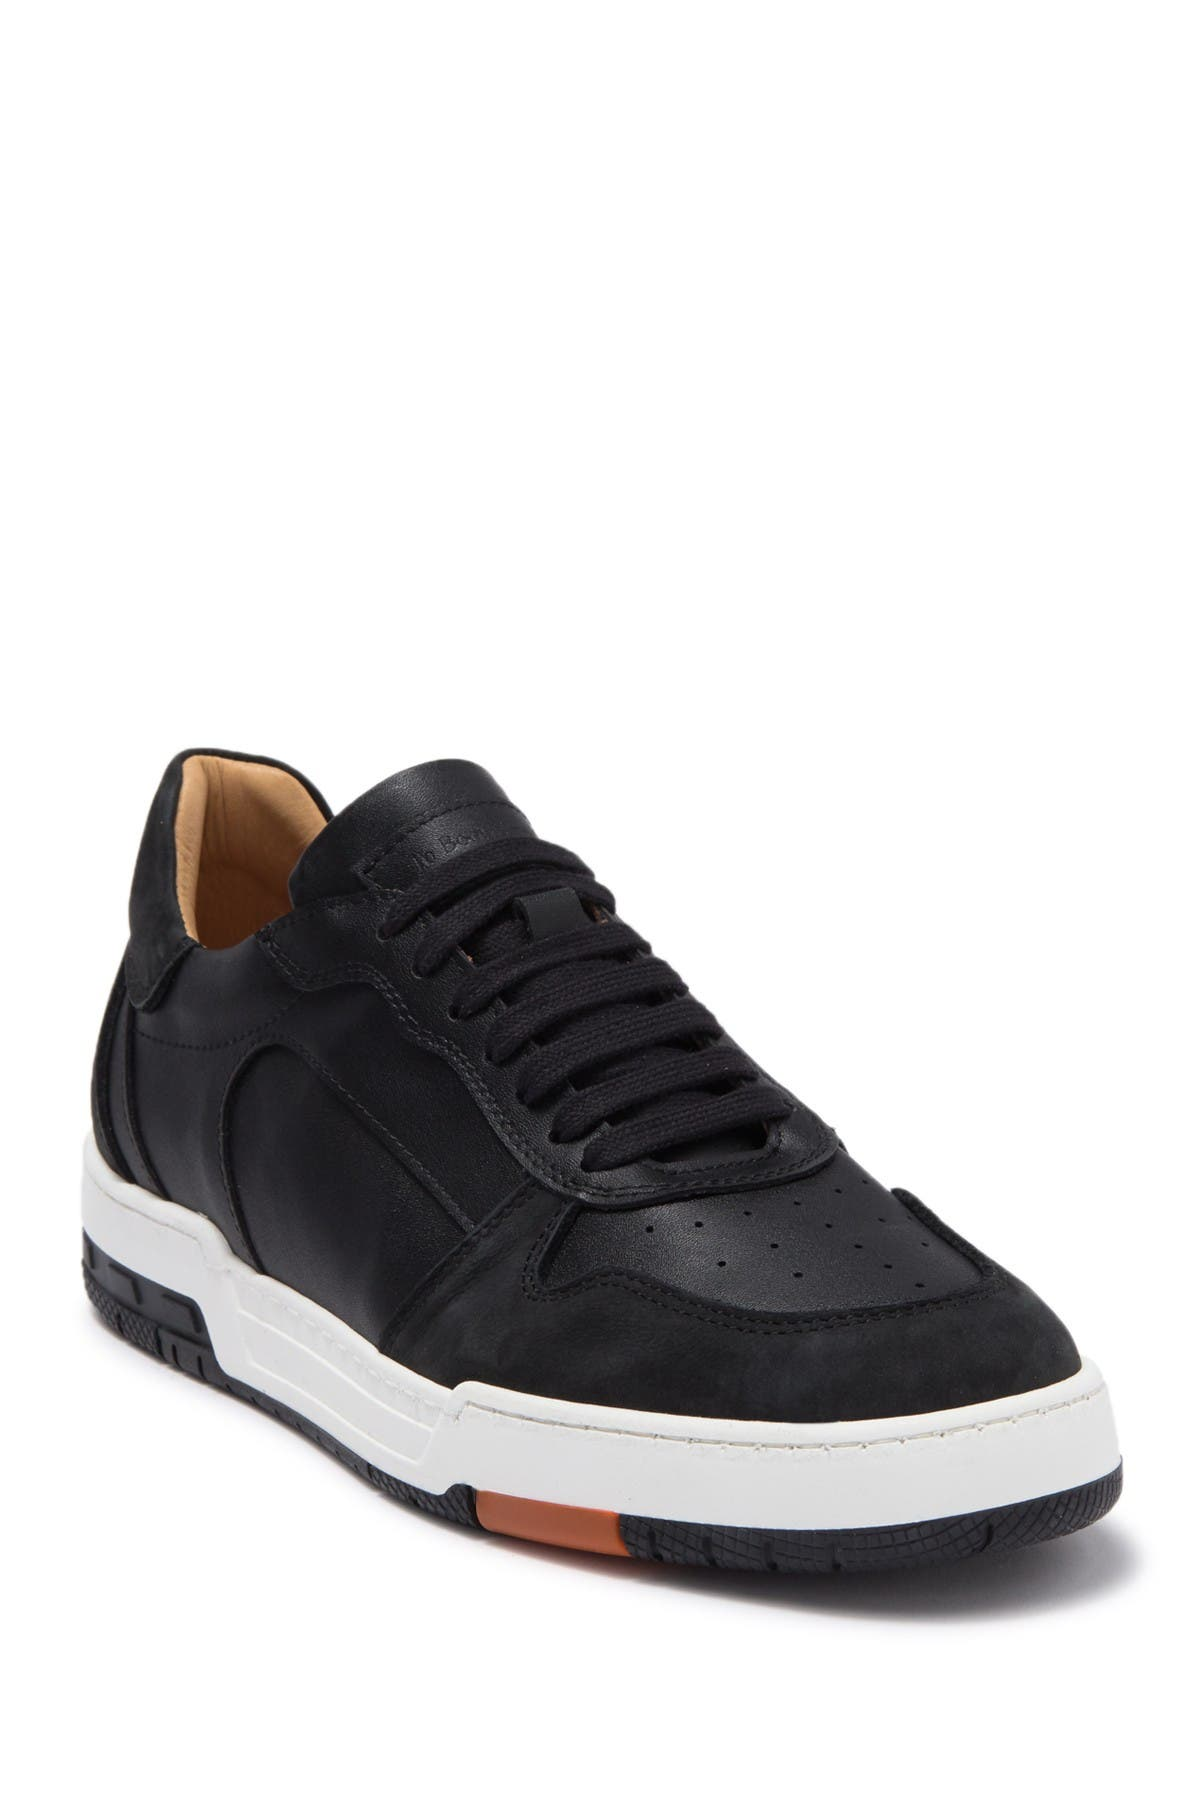 Image of To Boot New York Jefferson Leather Sneaker